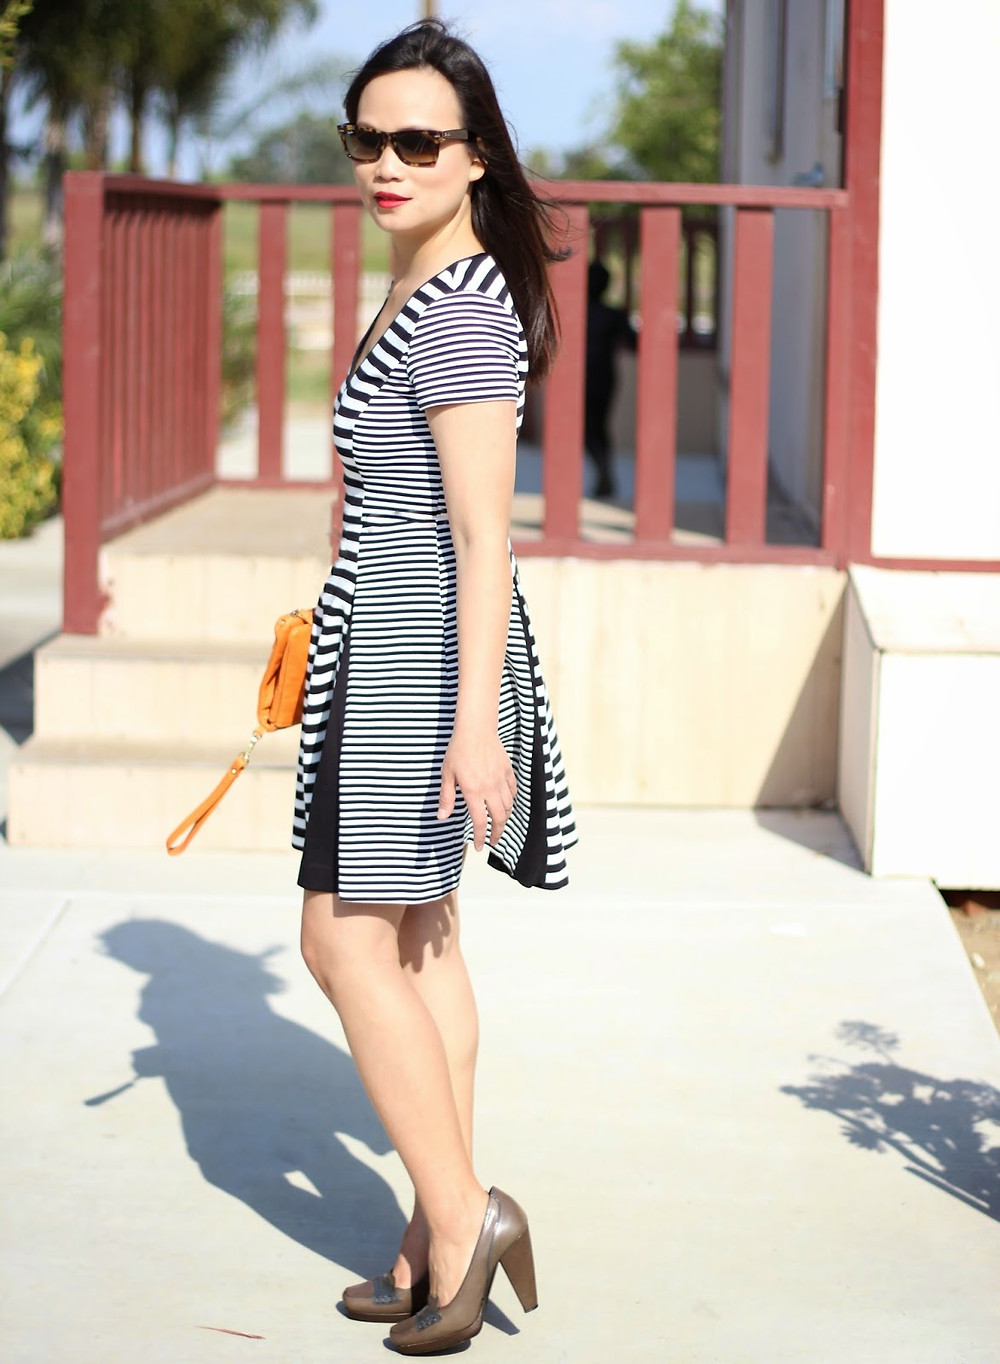 Banana republic summer dress